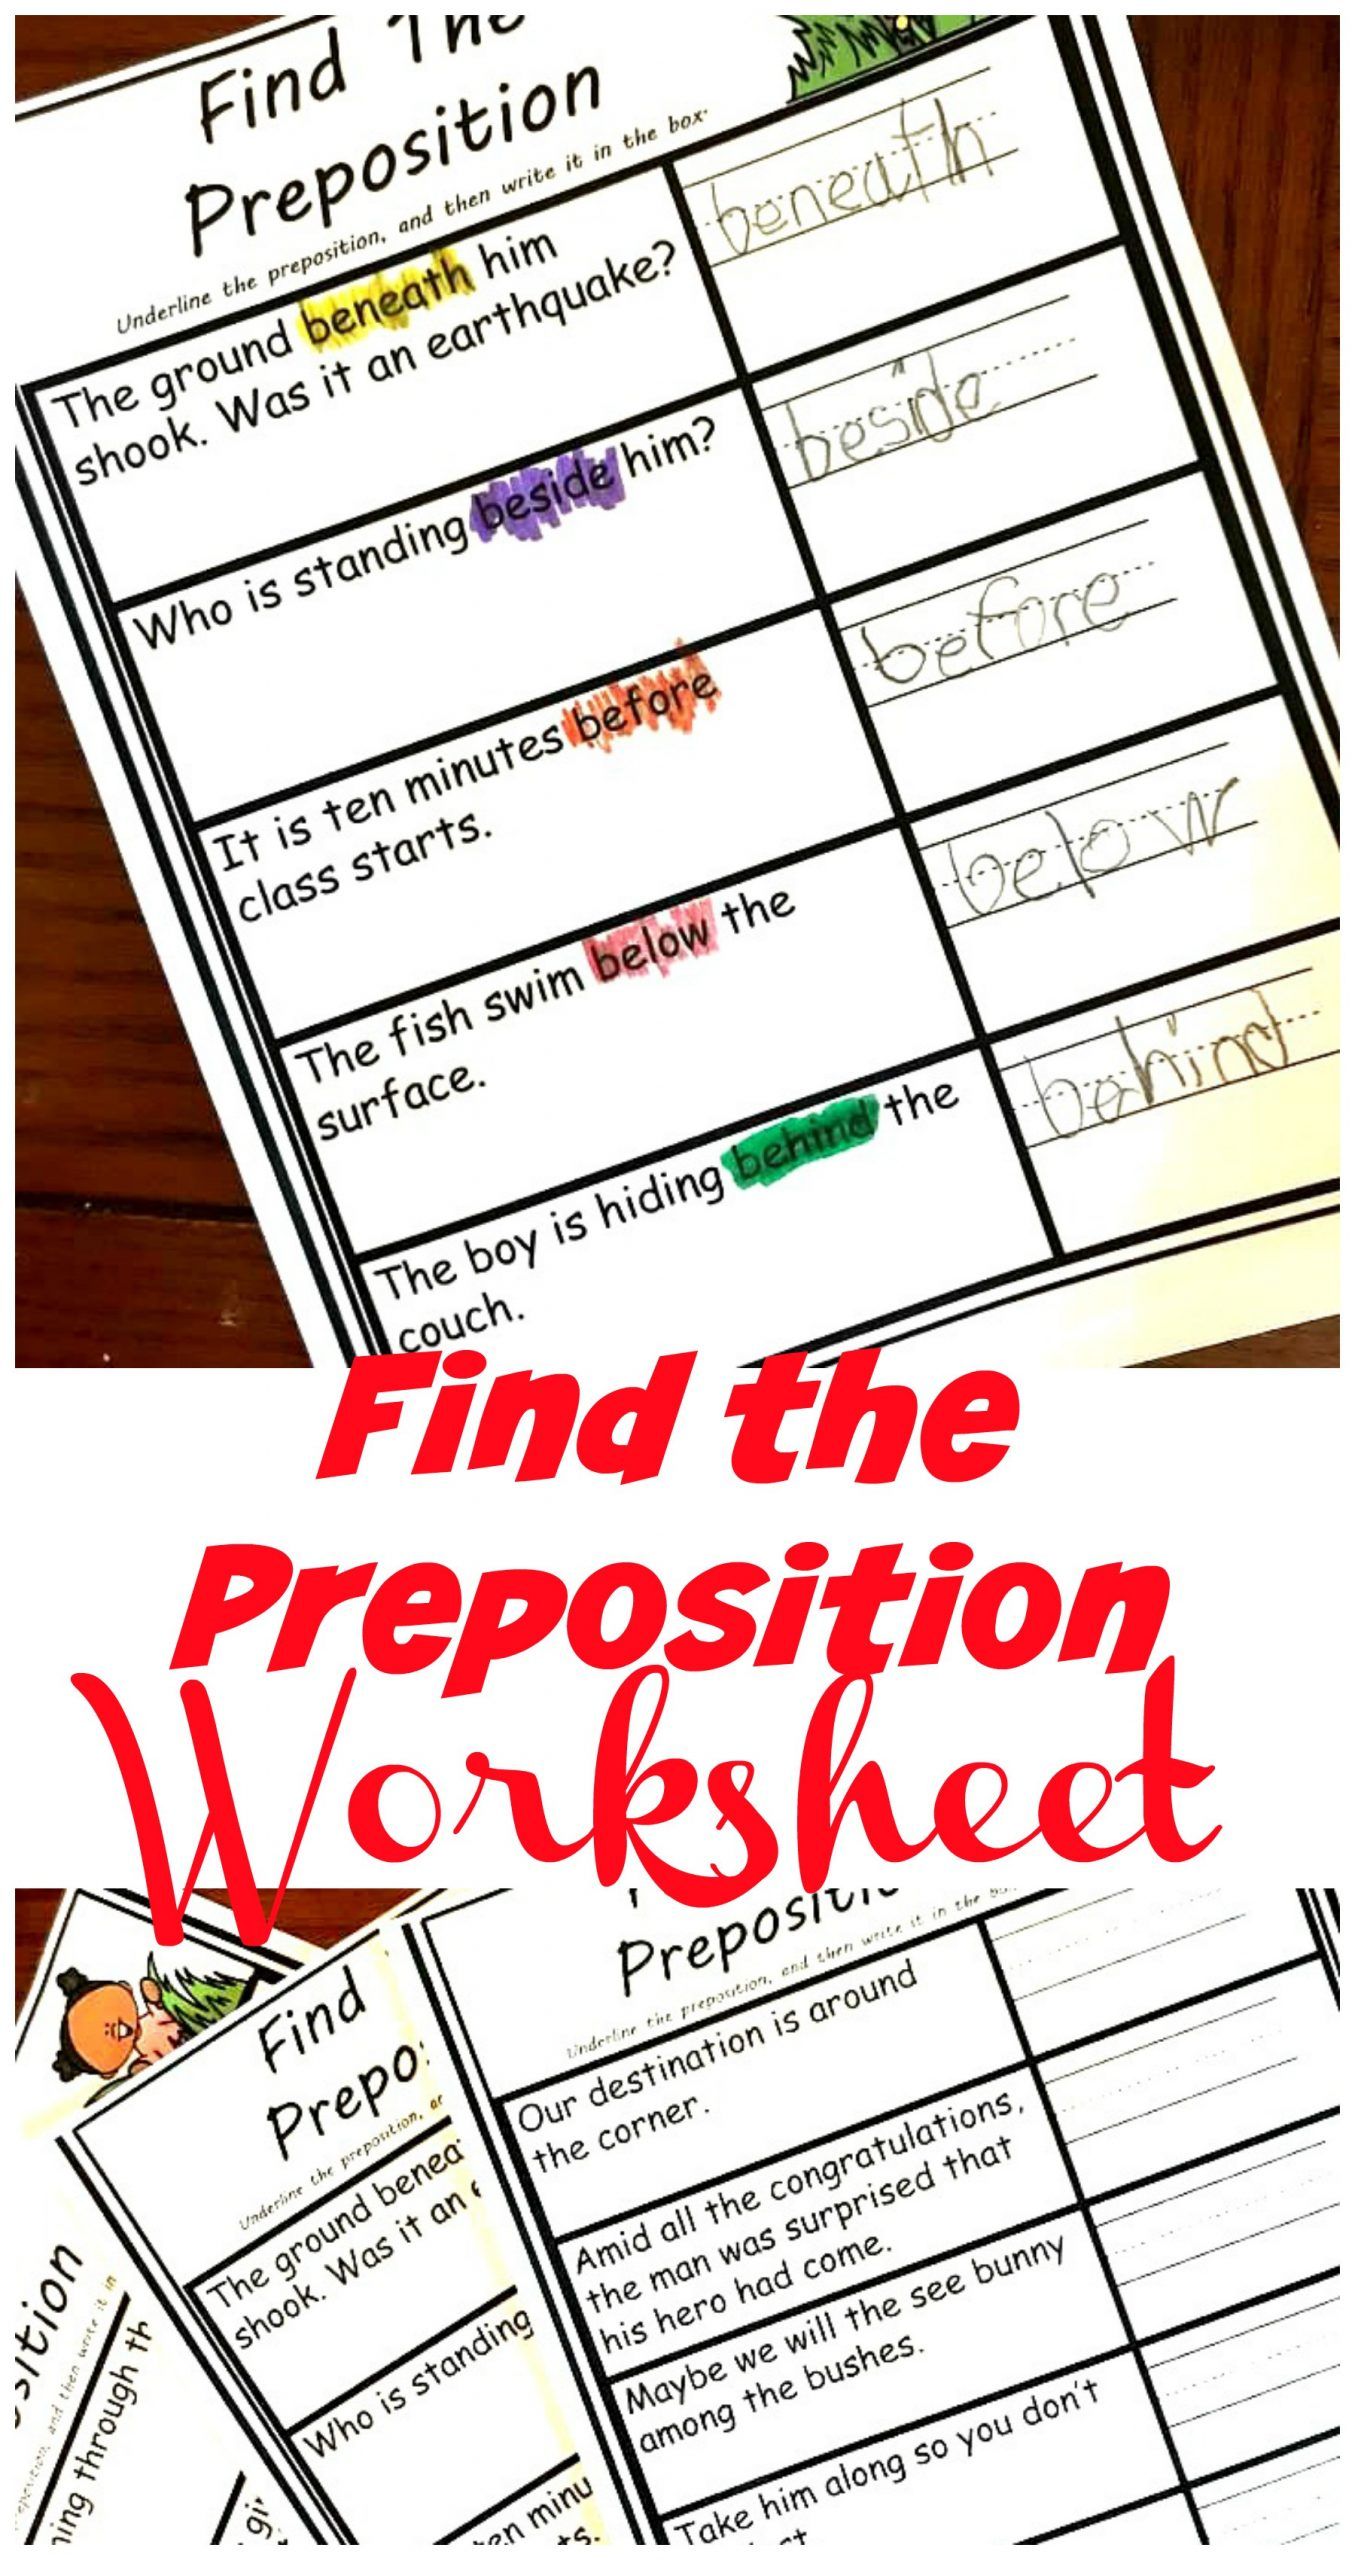 Free Printable Preposition Worksheets Free Simple and Easy Find the Preposition Worksheets